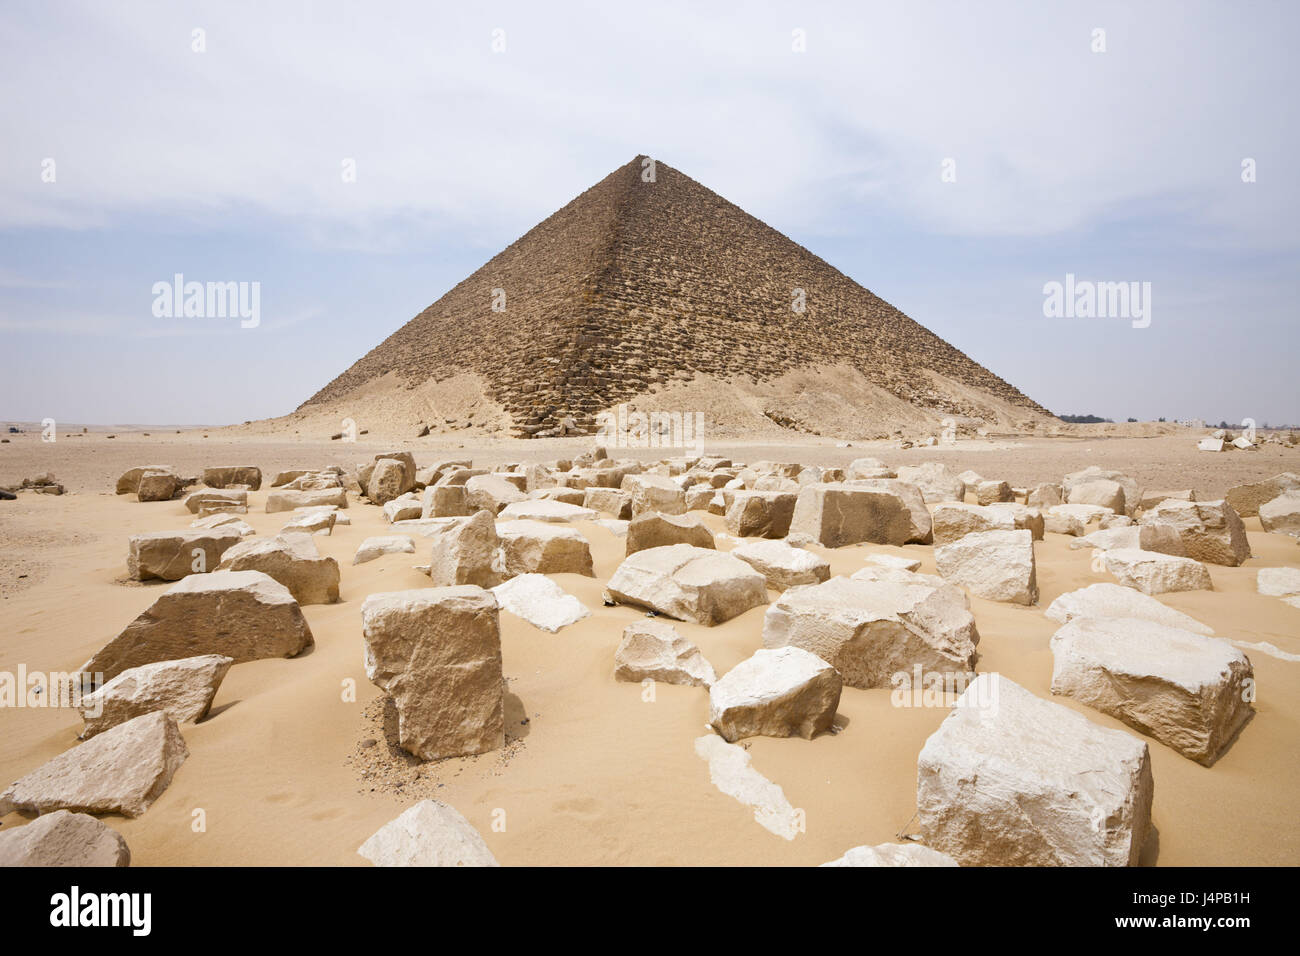 Red pyramid of the Pharaoh Snofru, Egypt, Dahschur, - Stock Image